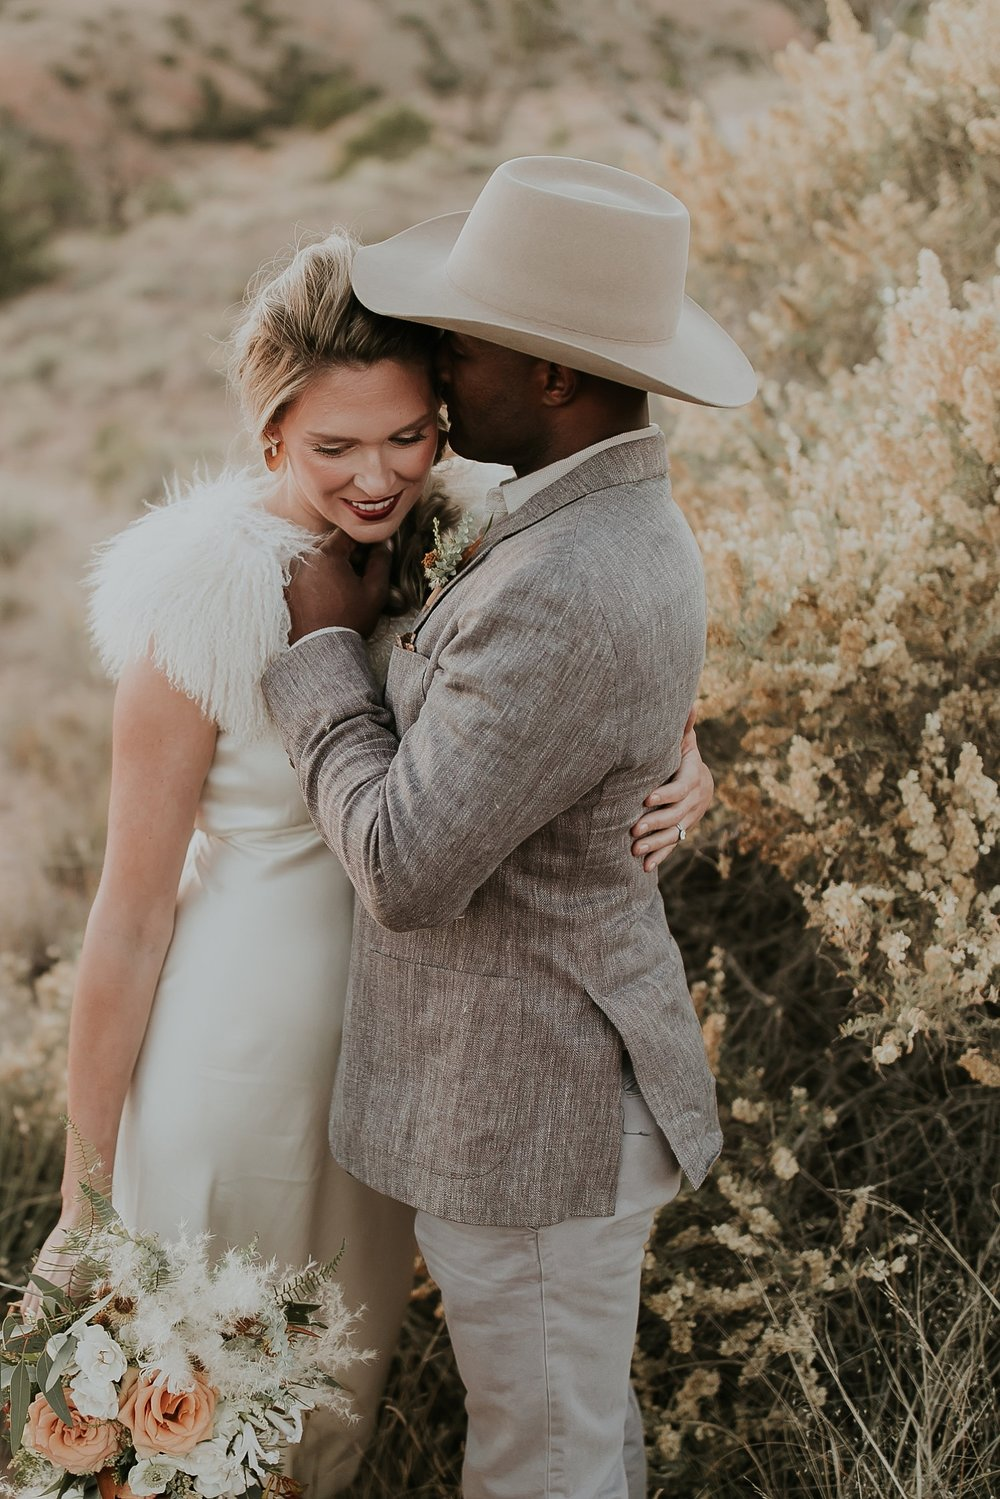 Alicia+lucia+photography+-+albuquerque+wedding+photographer+-+santa+fe+wedding+photography+-+new+mexico+wedding+photographer+-+new+mexico+ghost+ranch+wedding+-+styled+wedding+shoot_0074.jpg